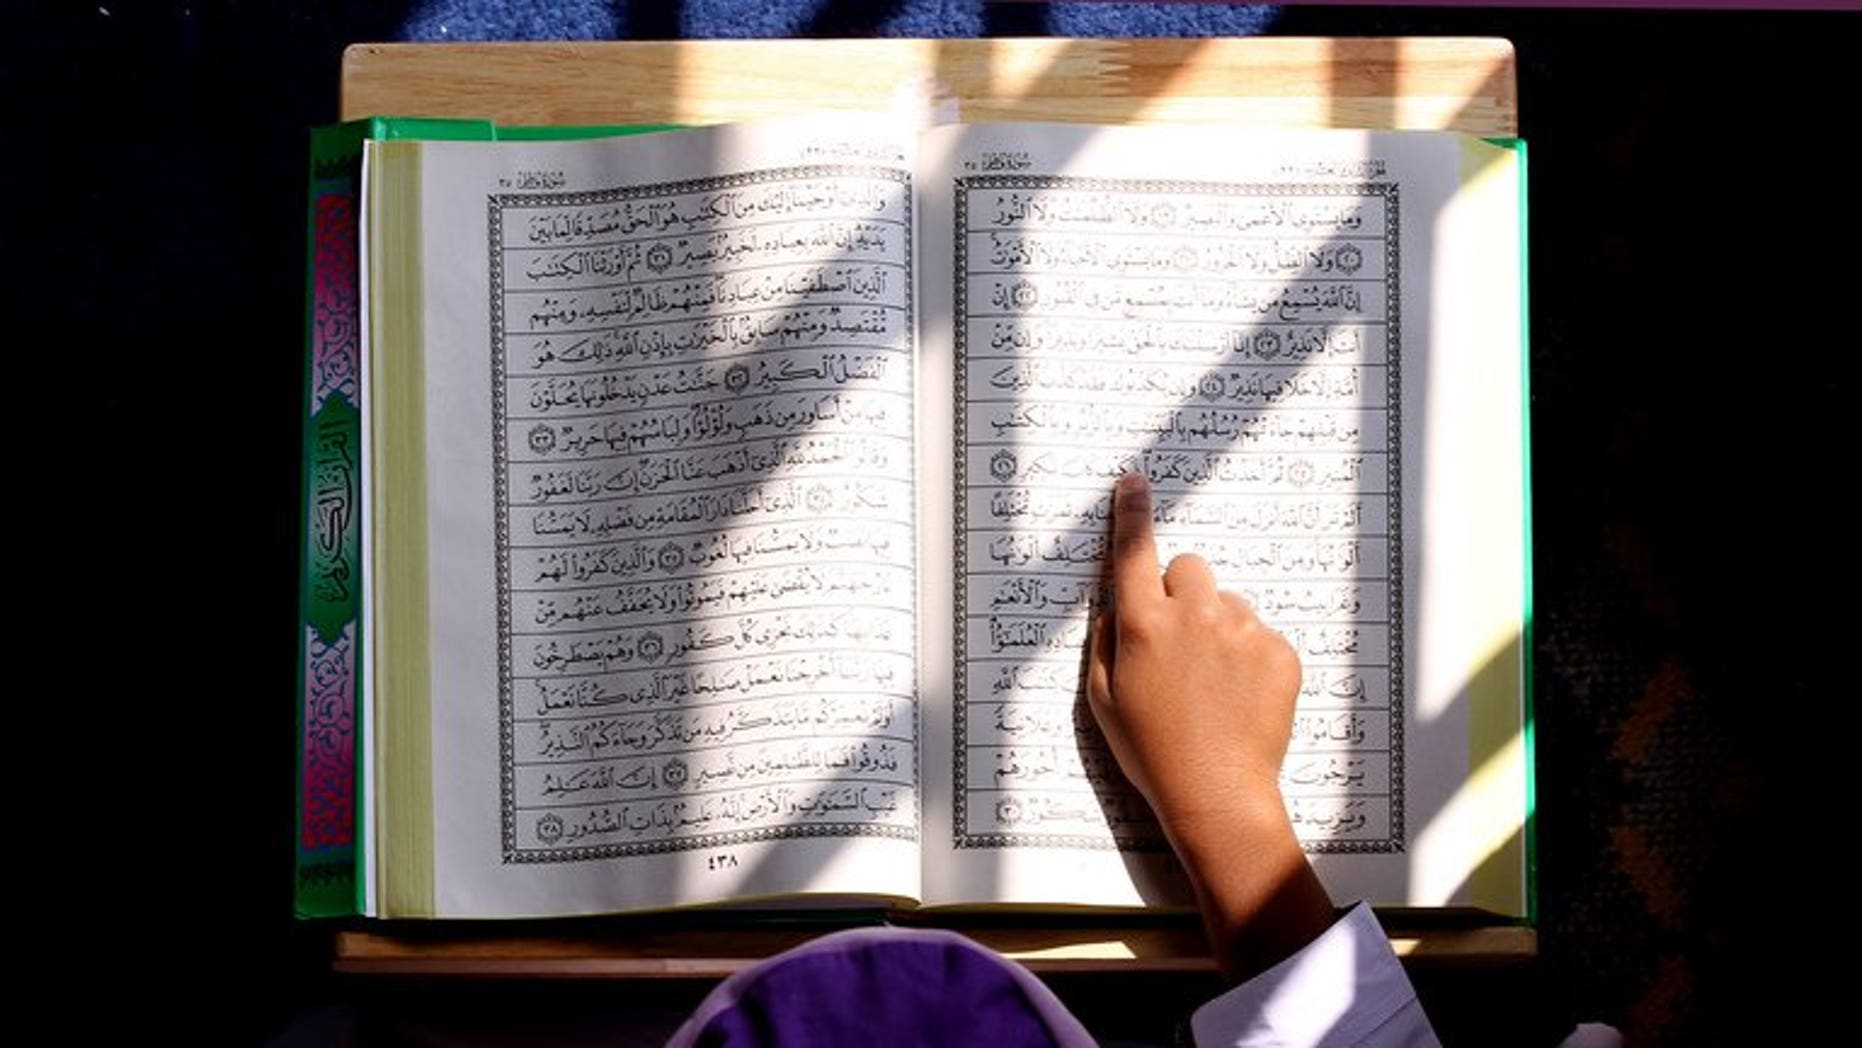 A Malaysian Muslim boy reads from the Koran inside a mosque in Kuala Lumpur on July 31, 2011. A Malaysian court on Thursday ruled against the 2009 conversion of three Hindu children to Islam without their mother's knowledge, a verdict welcomed by non-Muslim groups.